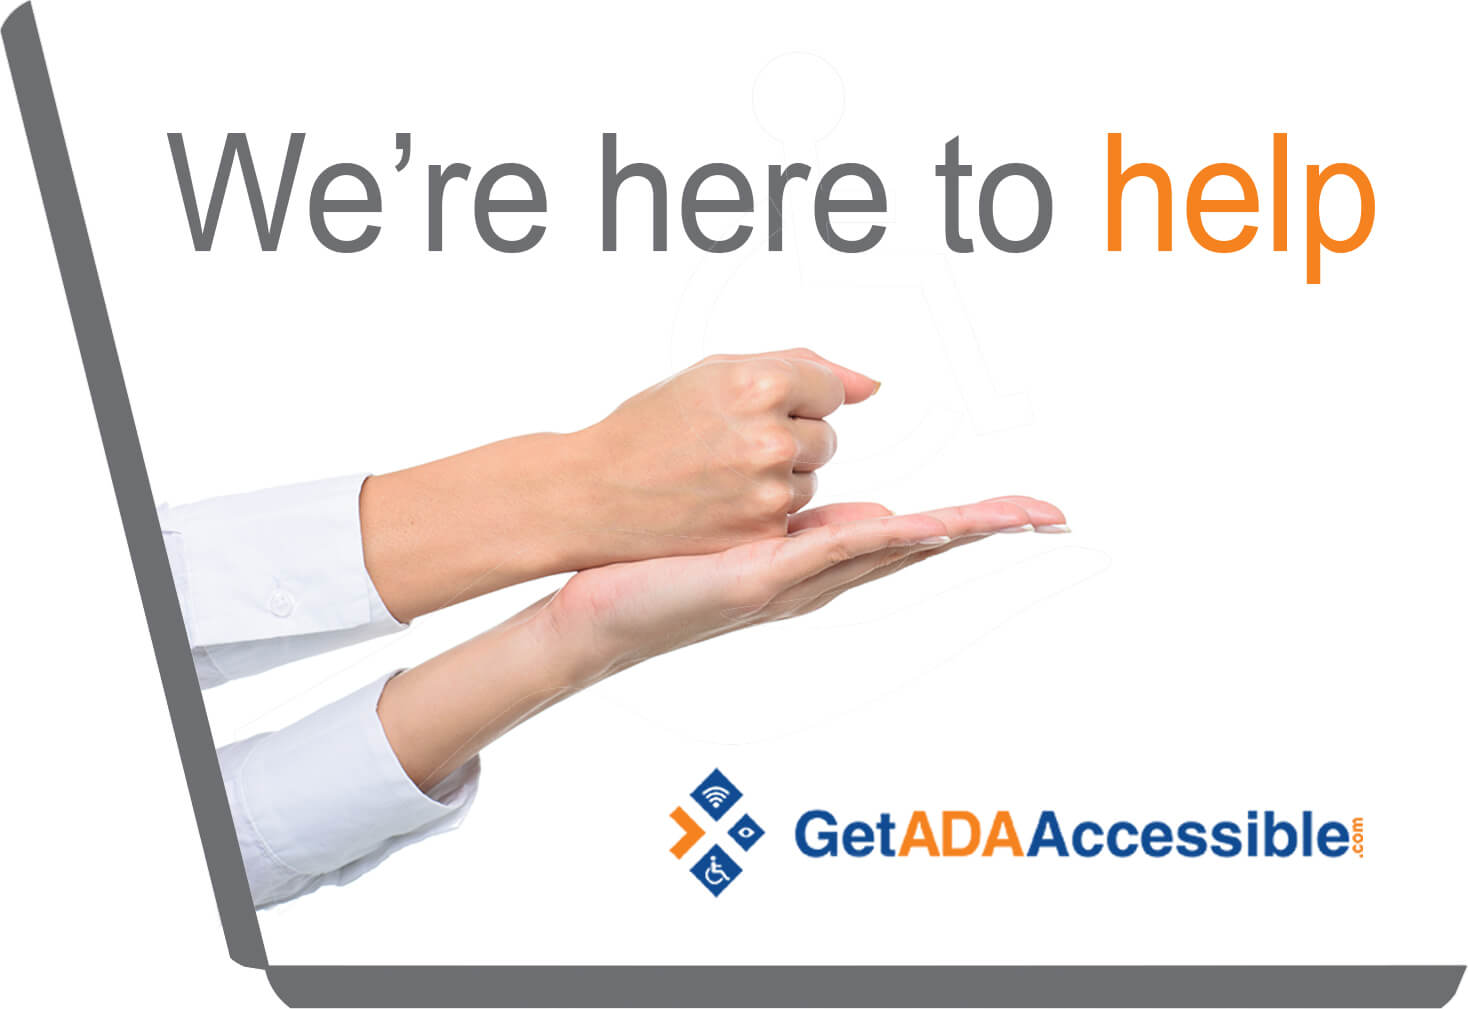 getADAAccessible is here to help make the web accessible